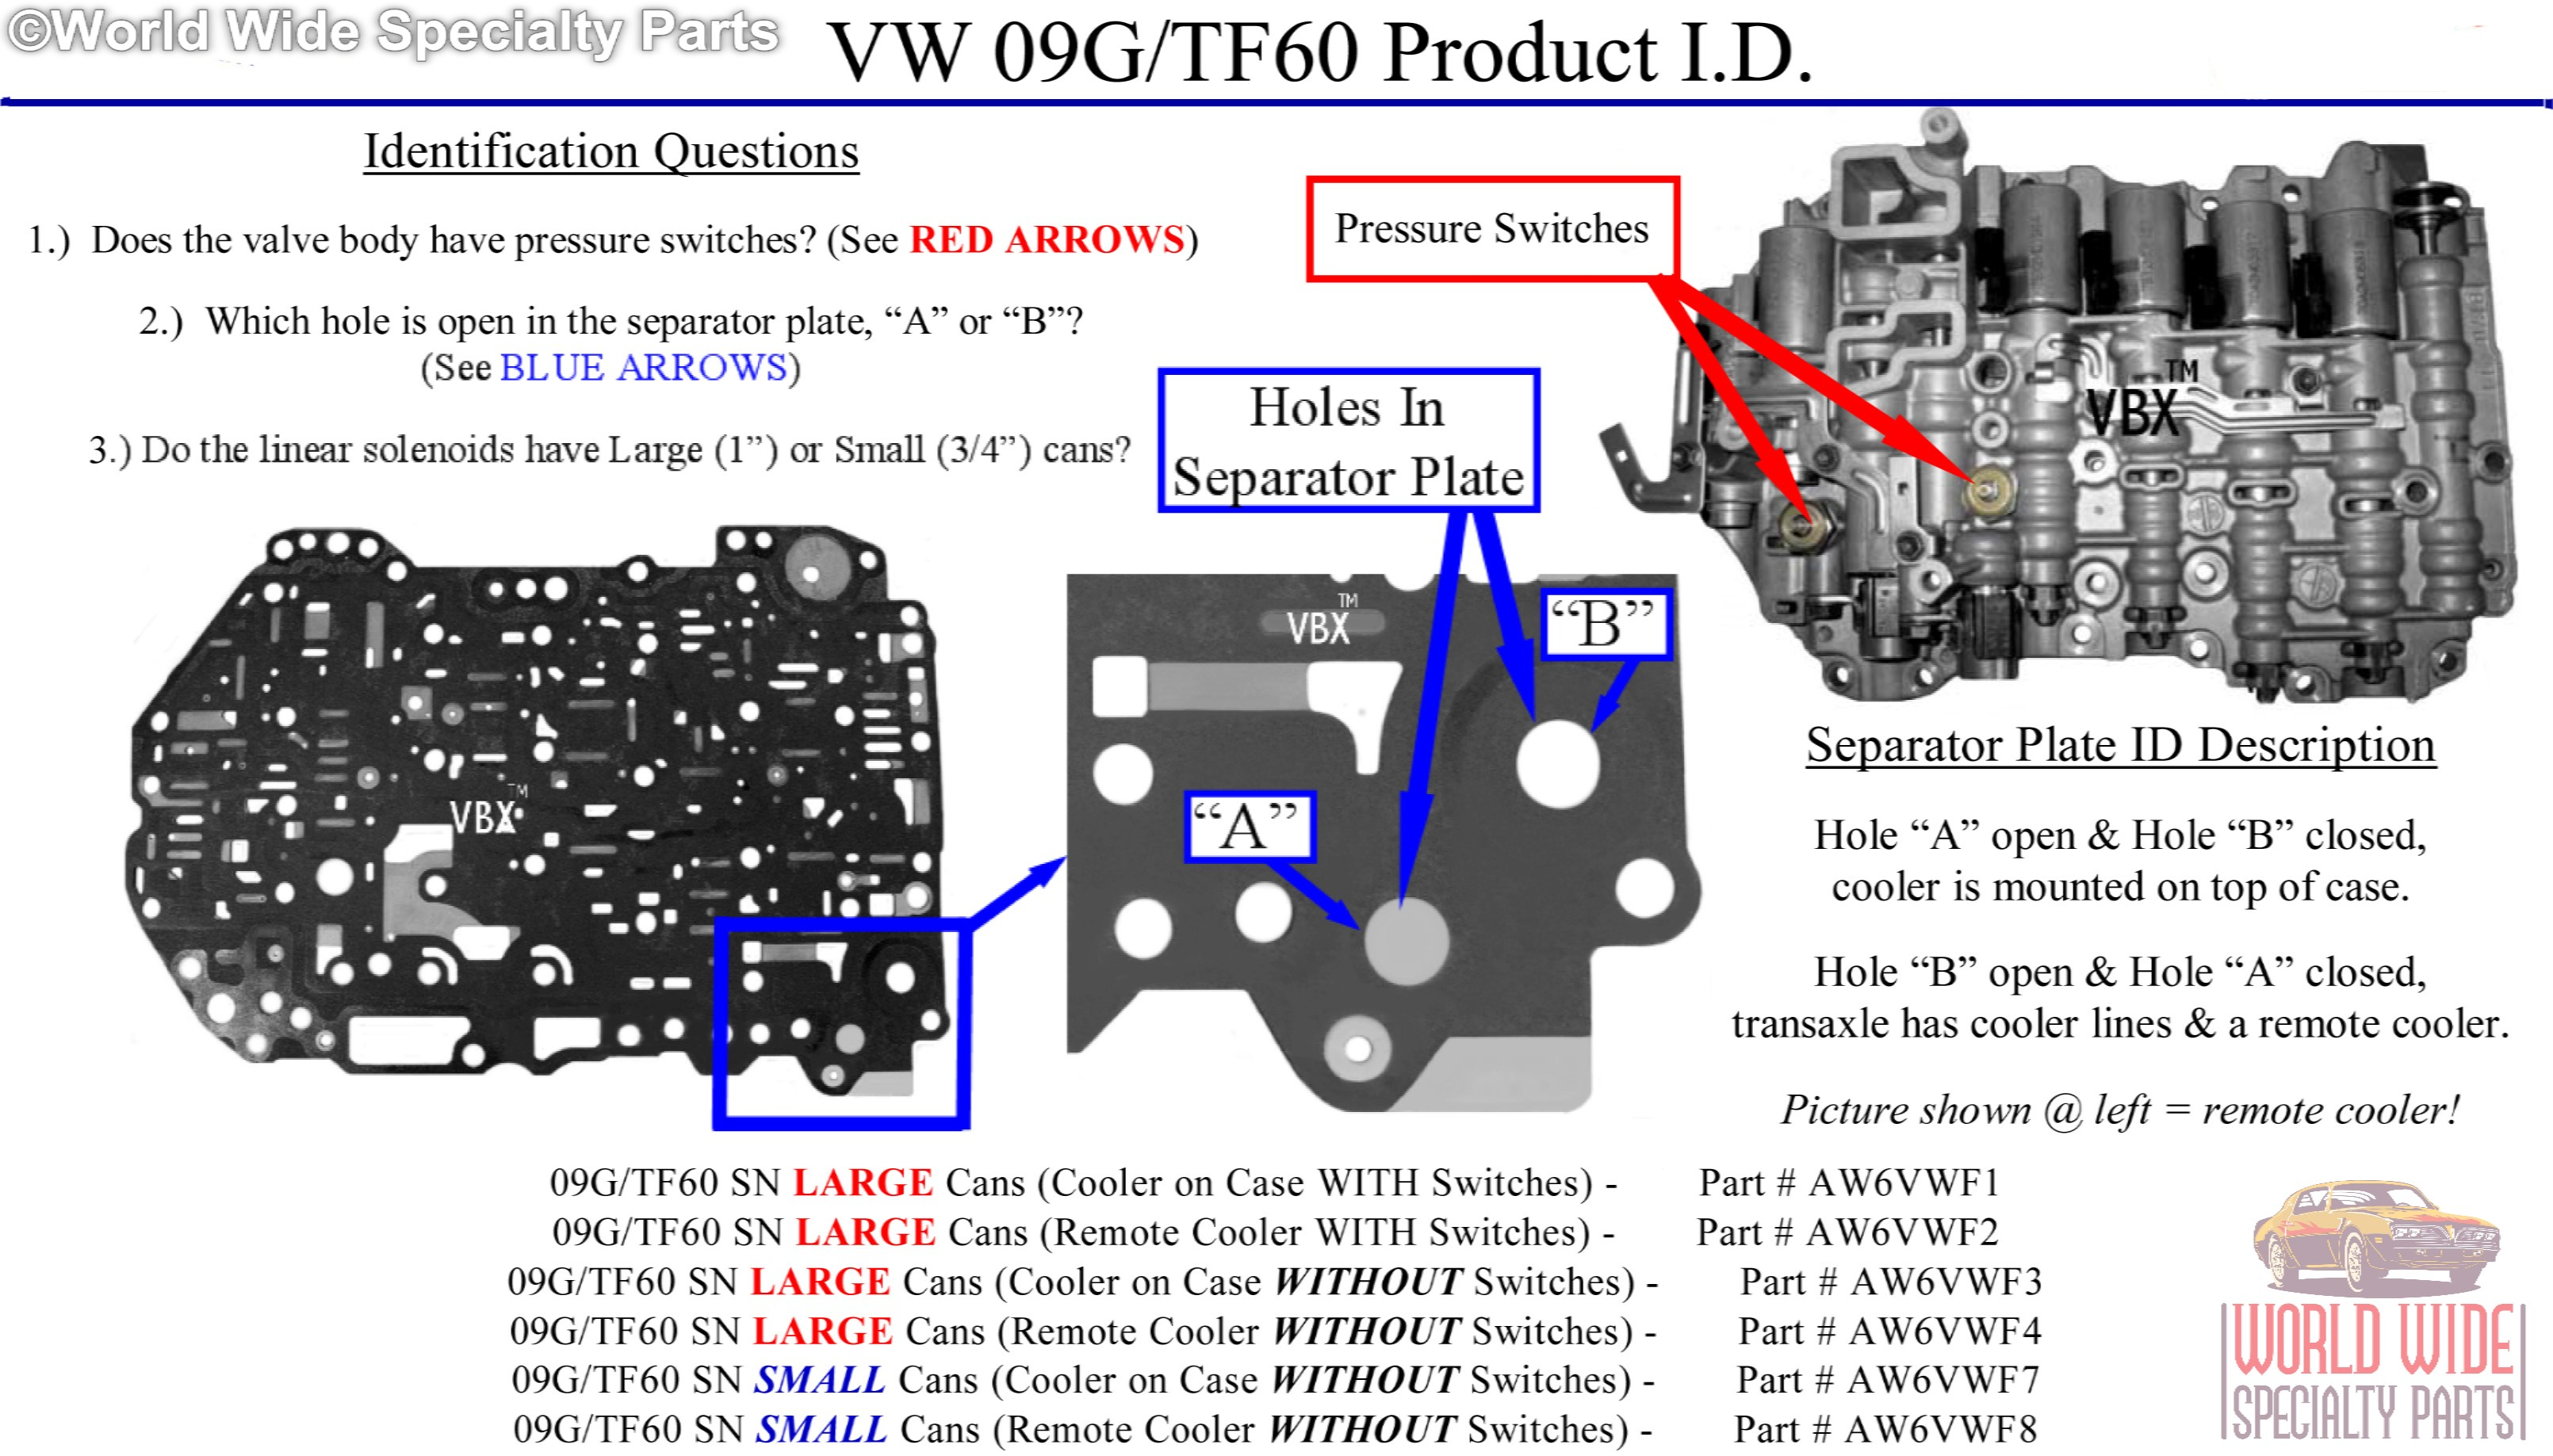 Details about Volkswagen 09G, TF60SN Valve Body, w/Remote Cooler Up to  06/04 (1 YEAR WARRANTY)